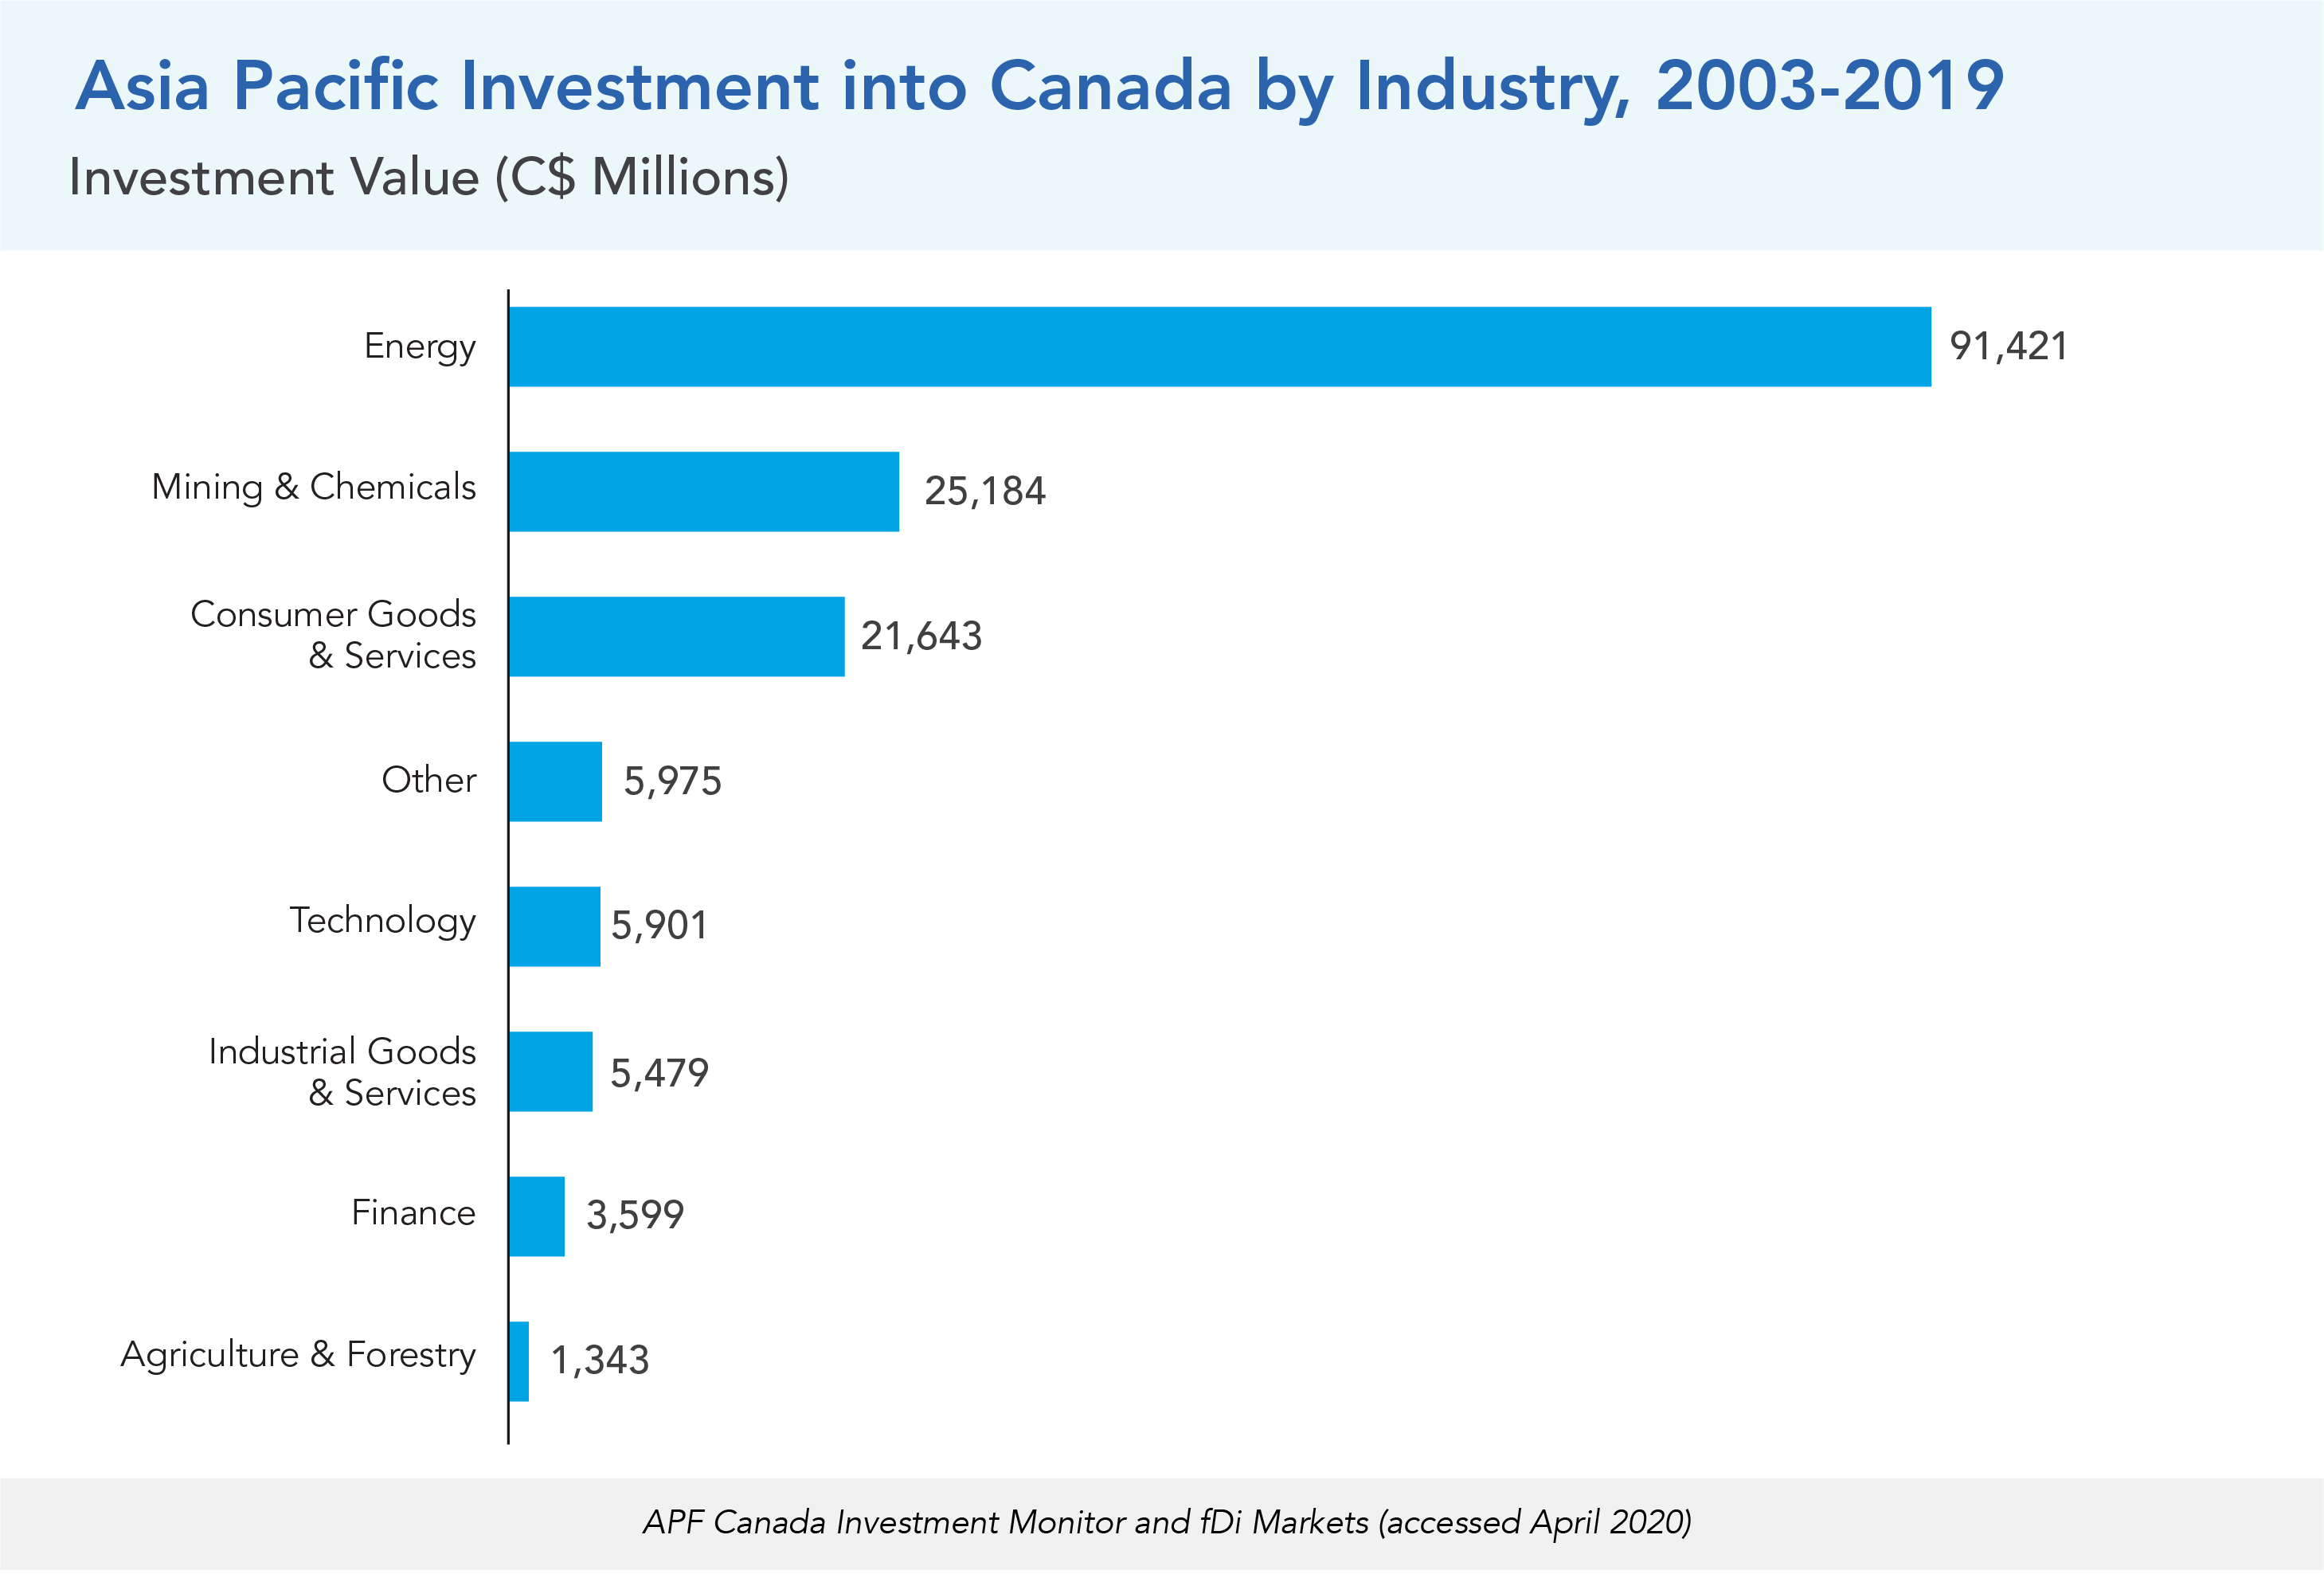 Asia Pacific Investment into Canada by Industry, 2003-2019